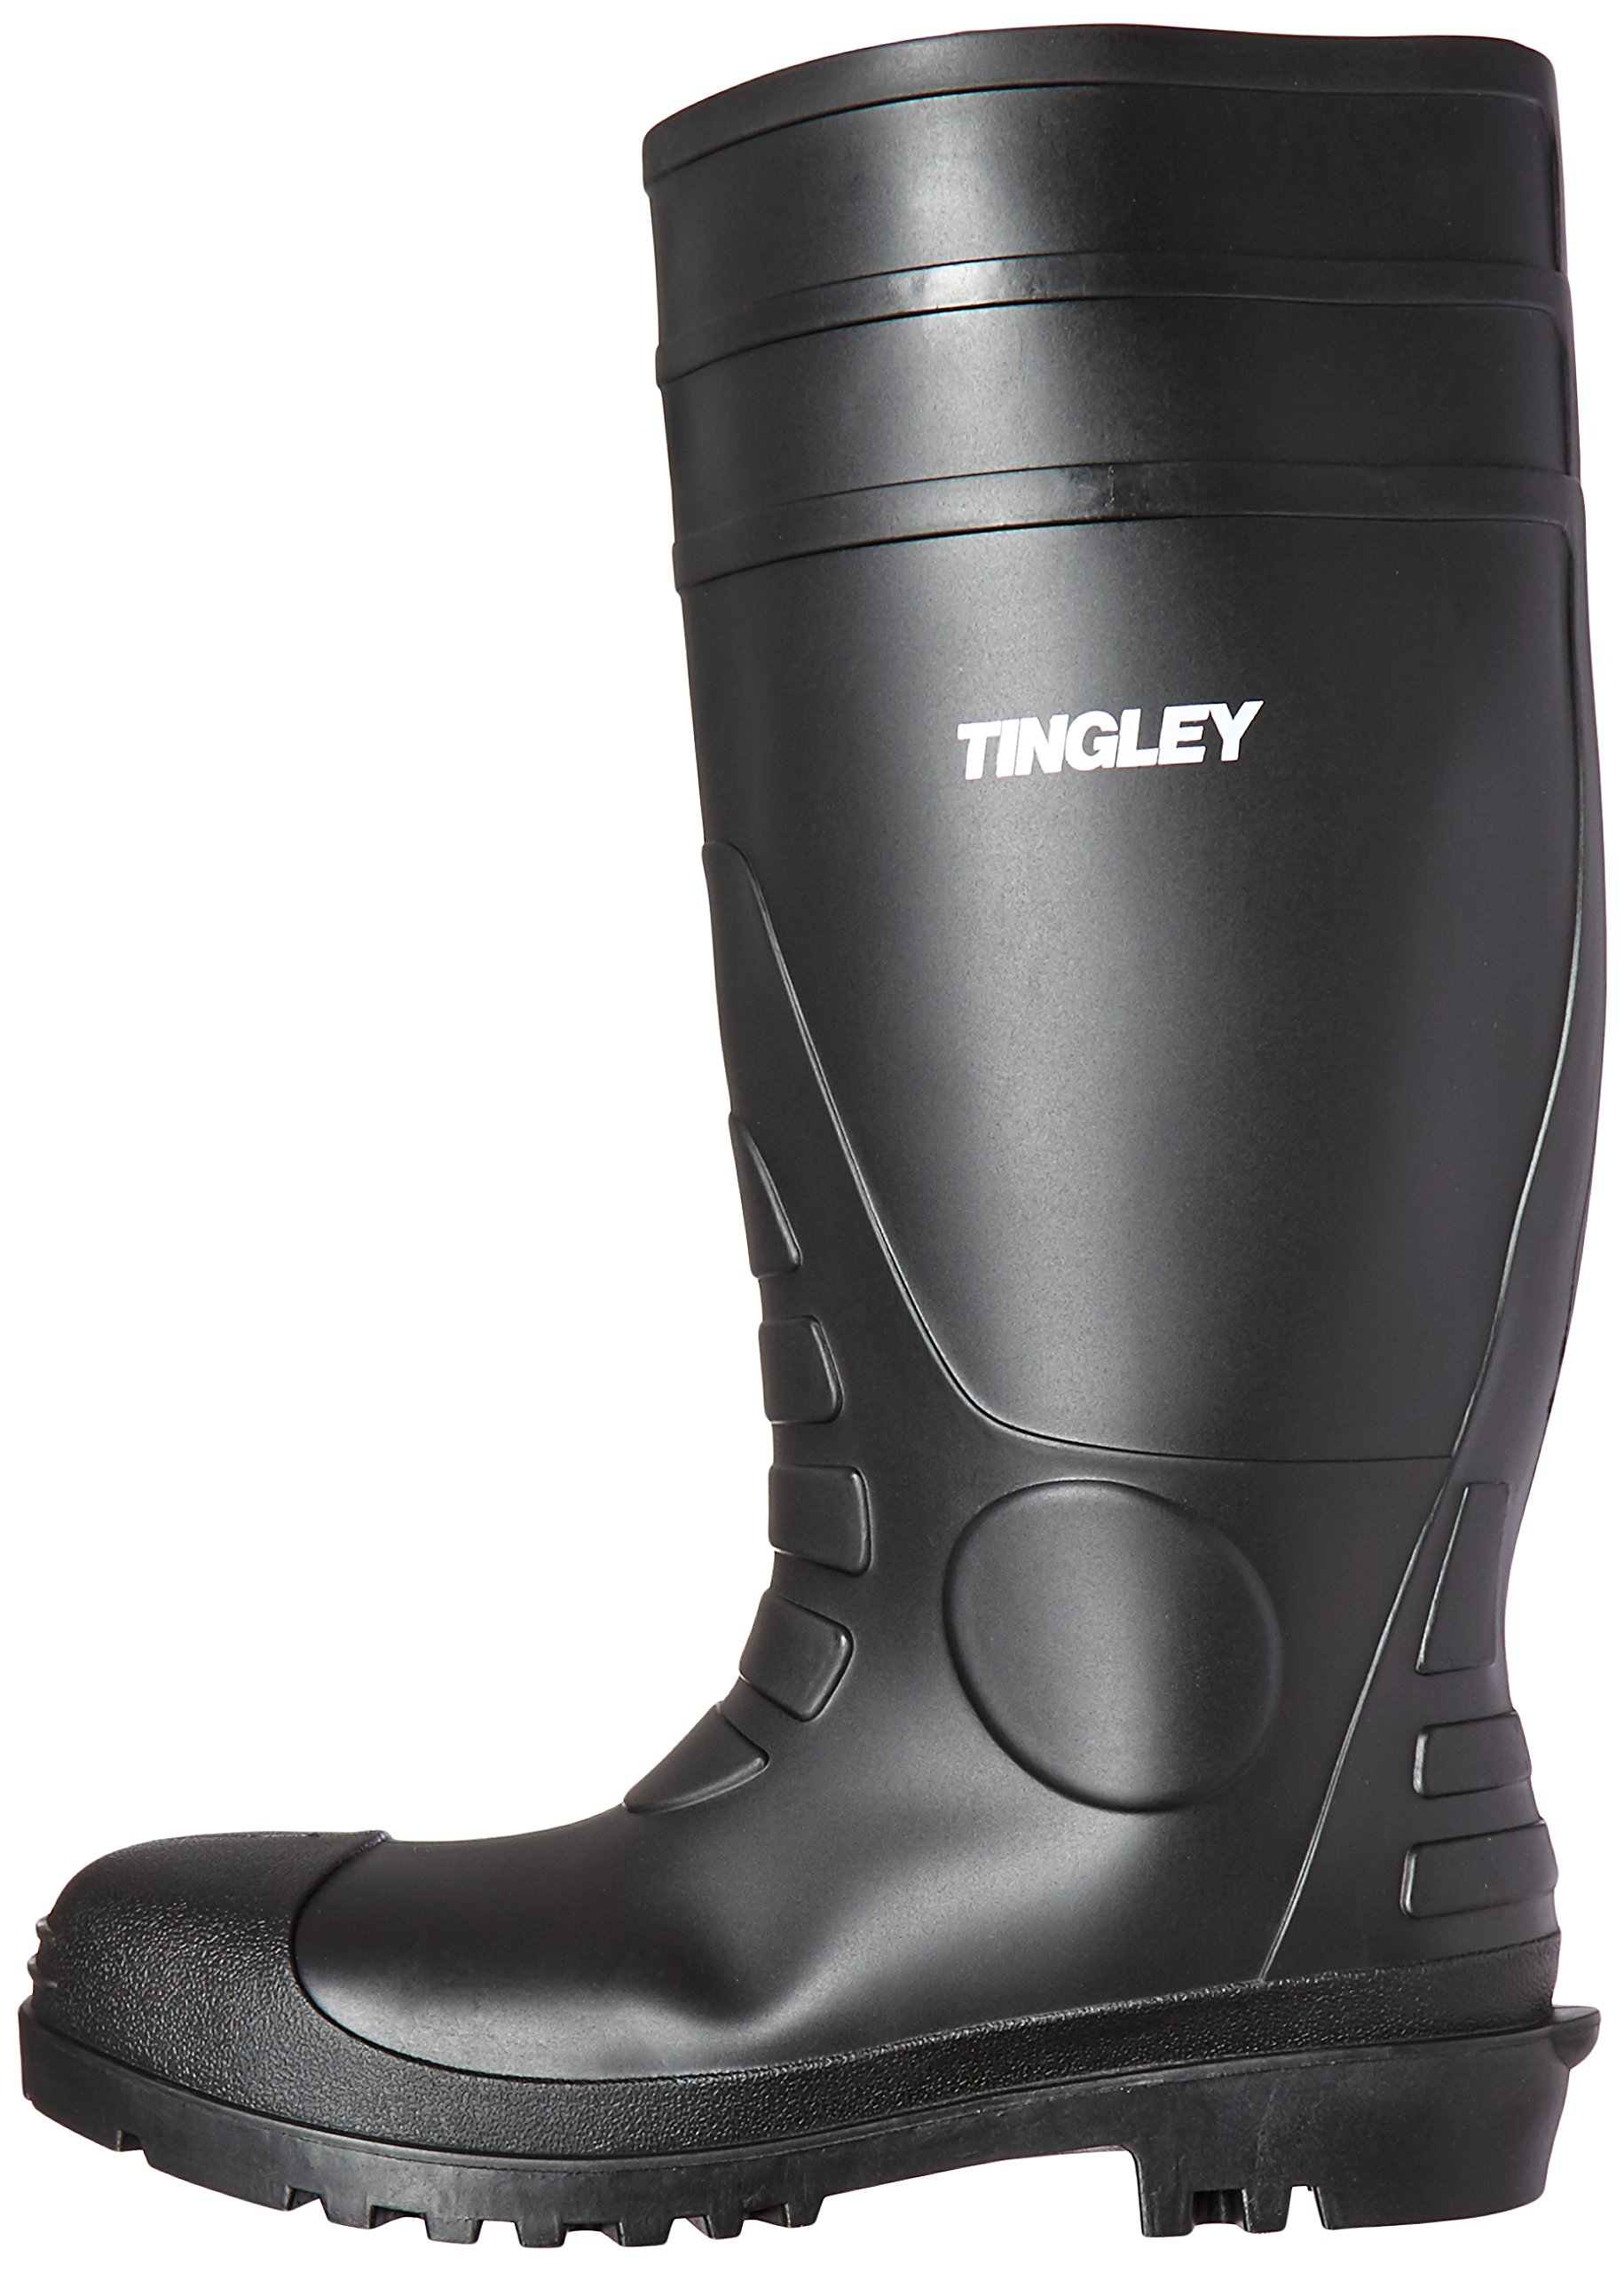 TINGLEY 31151 Economy SZ12 Kneed Boot for Agriculture, 15-Inch, Black by TINGLEY (Image #5)